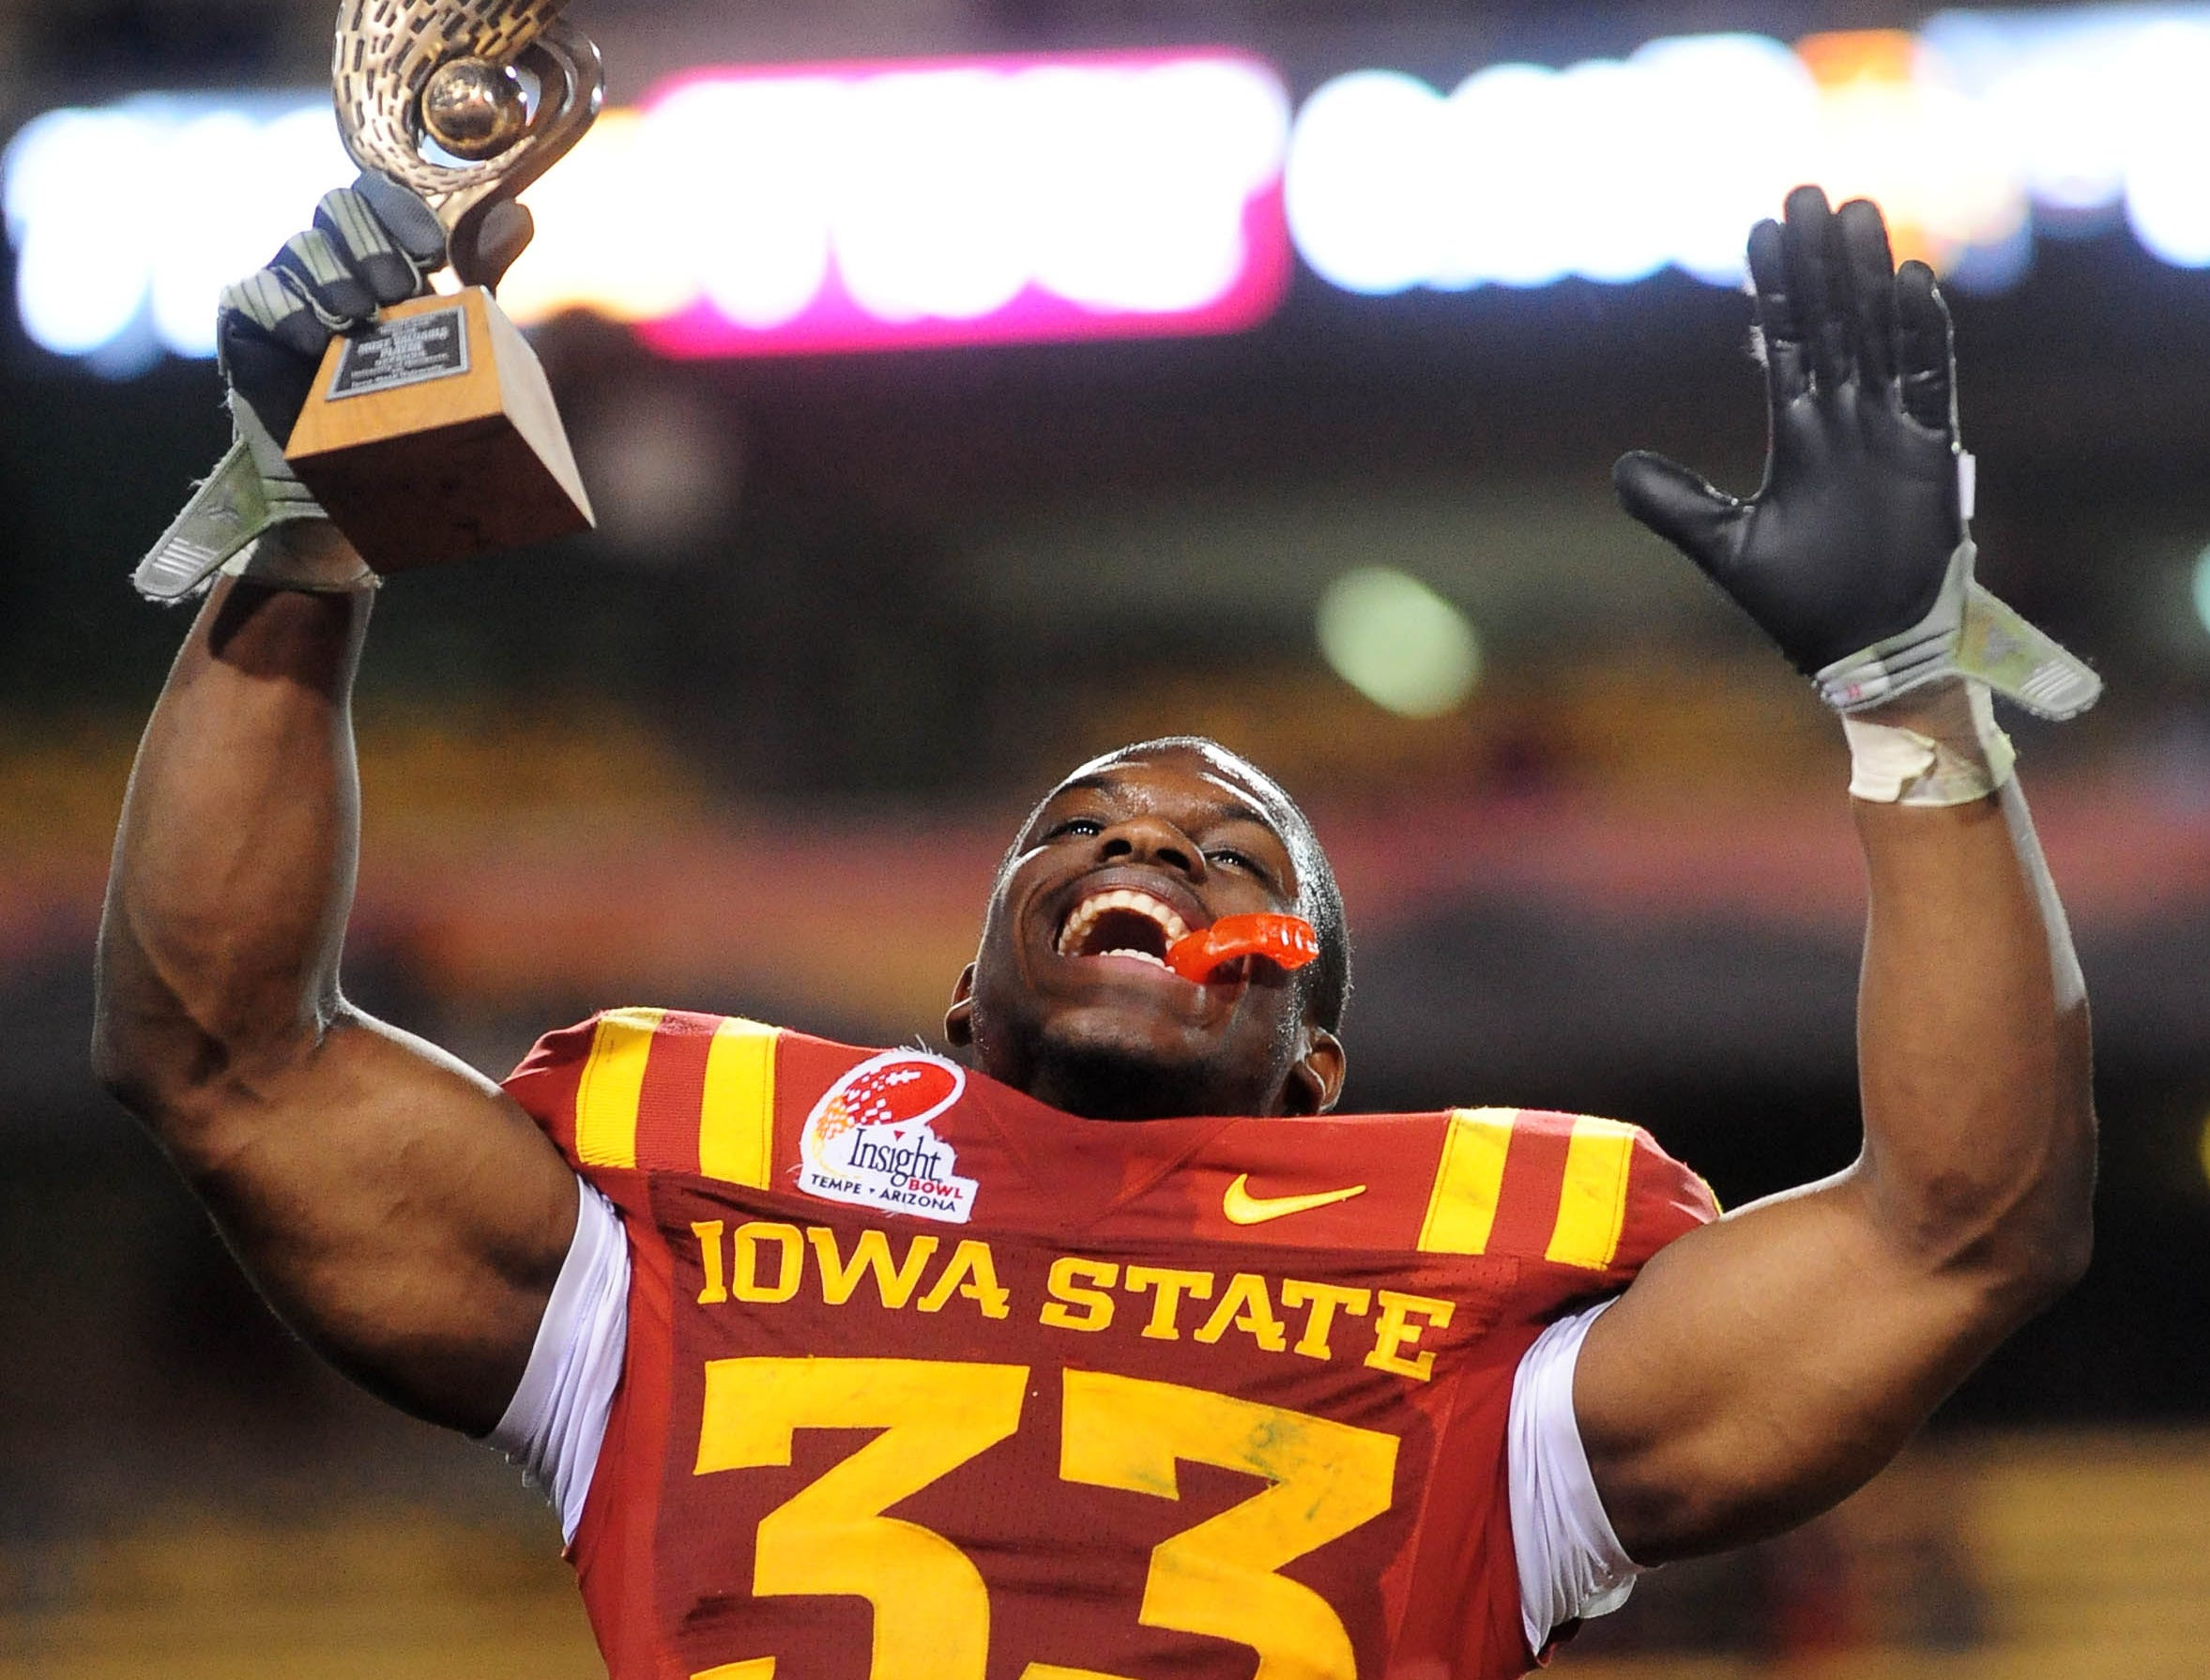 Dec 31, 2009; Tempe, AZ, USA; Iowa State Cyclones running back Alexander Robinson celebrates with the offensive player of the game trophy following the game against the Minnesota Golden Gophers in the 2009 Insight Bowl at Sun Devil Stadium. Iowa State defeated Minnesota 14-13. Mandatory Credit: Mark J. Rebilas-USA TODAY Sports